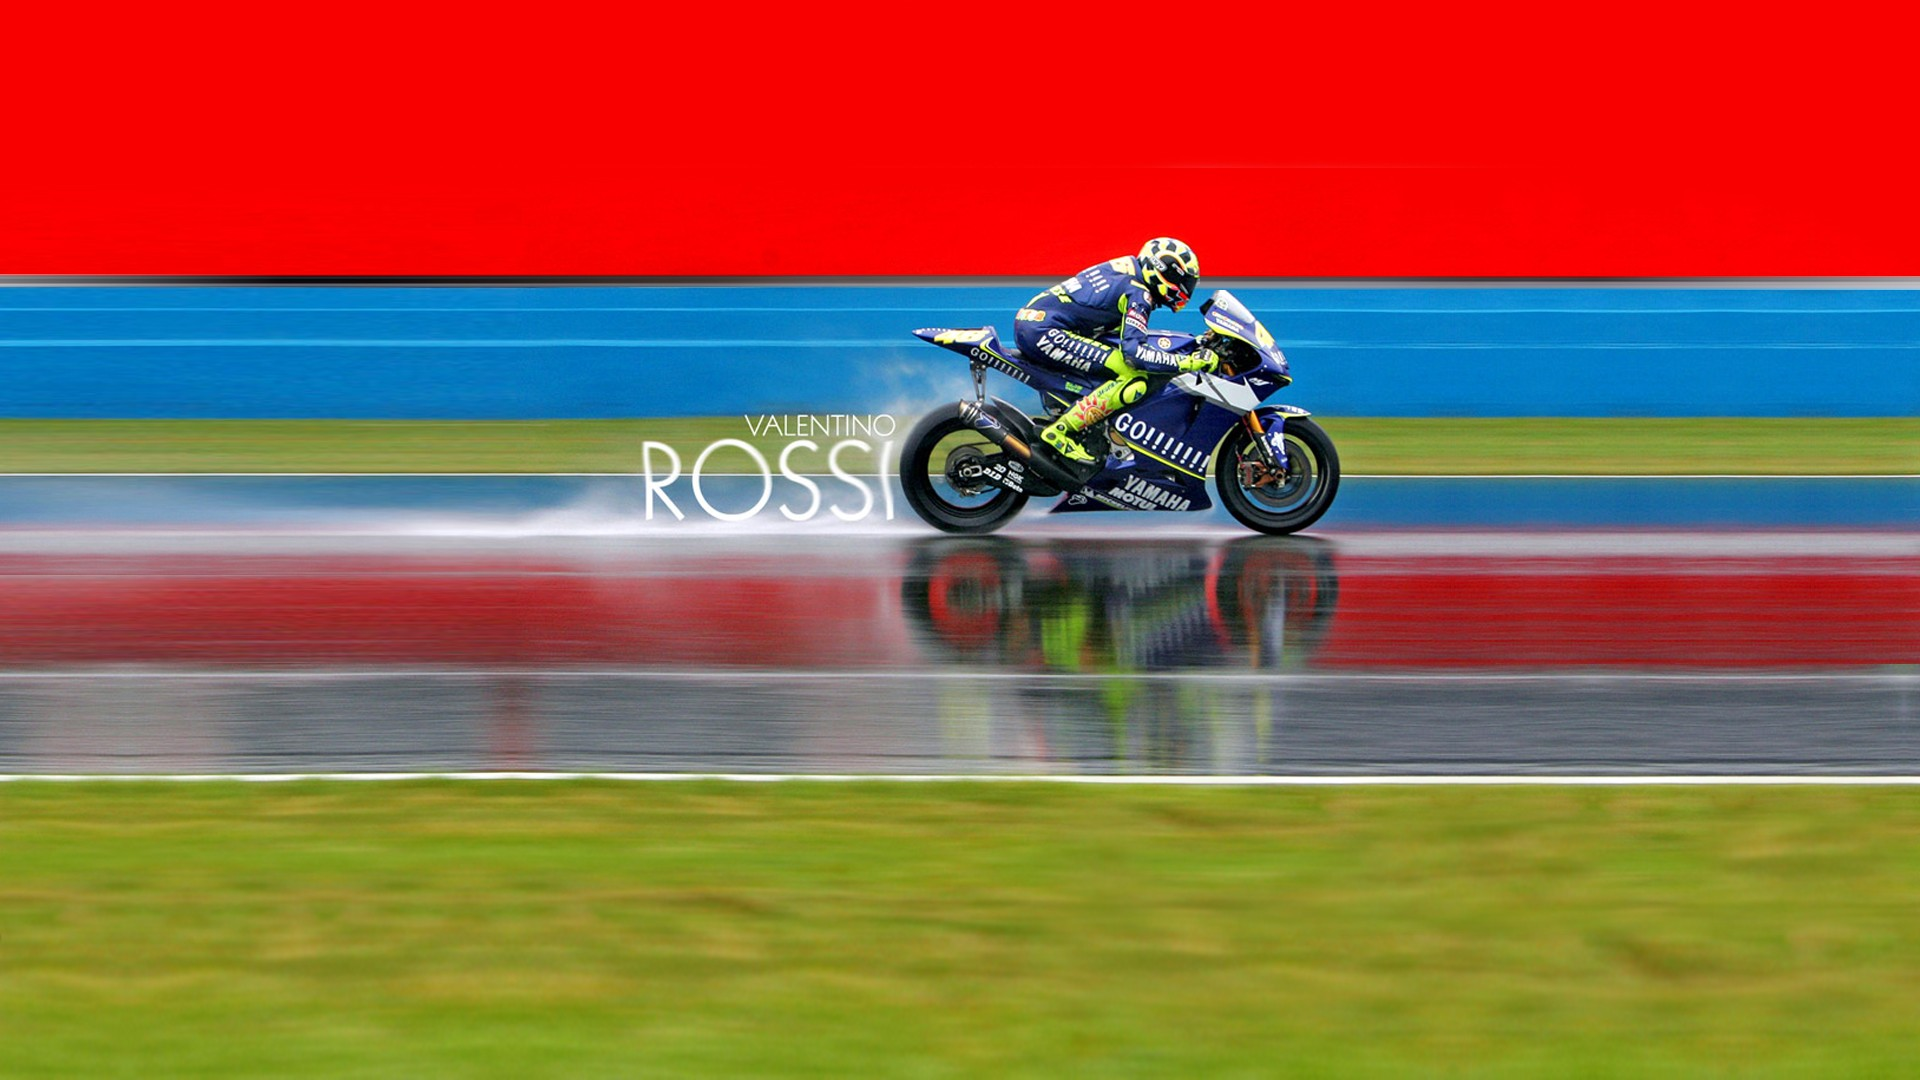 Bmw Full Hd Wallpaper Valentino Rossi Motogp Racer Wallpapers Hd Wallpapers